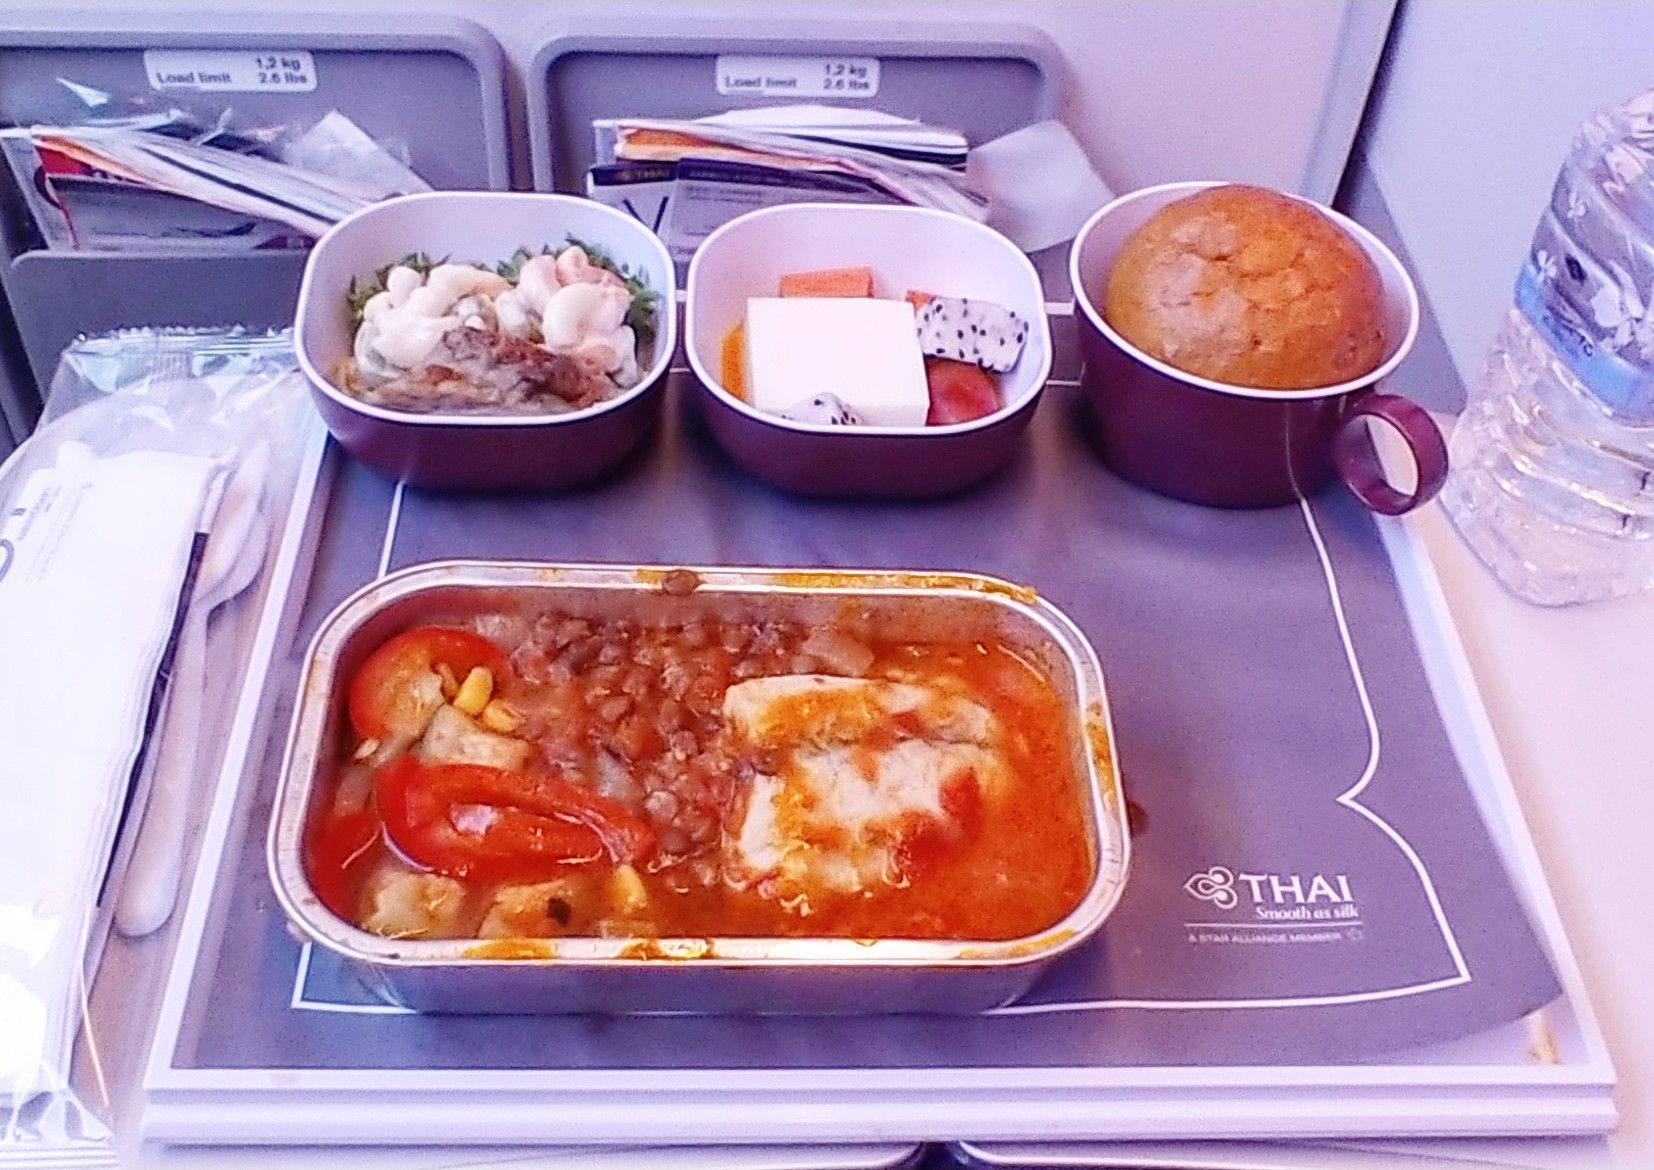 Thai Airways Economy Class Airline Food Food Meals